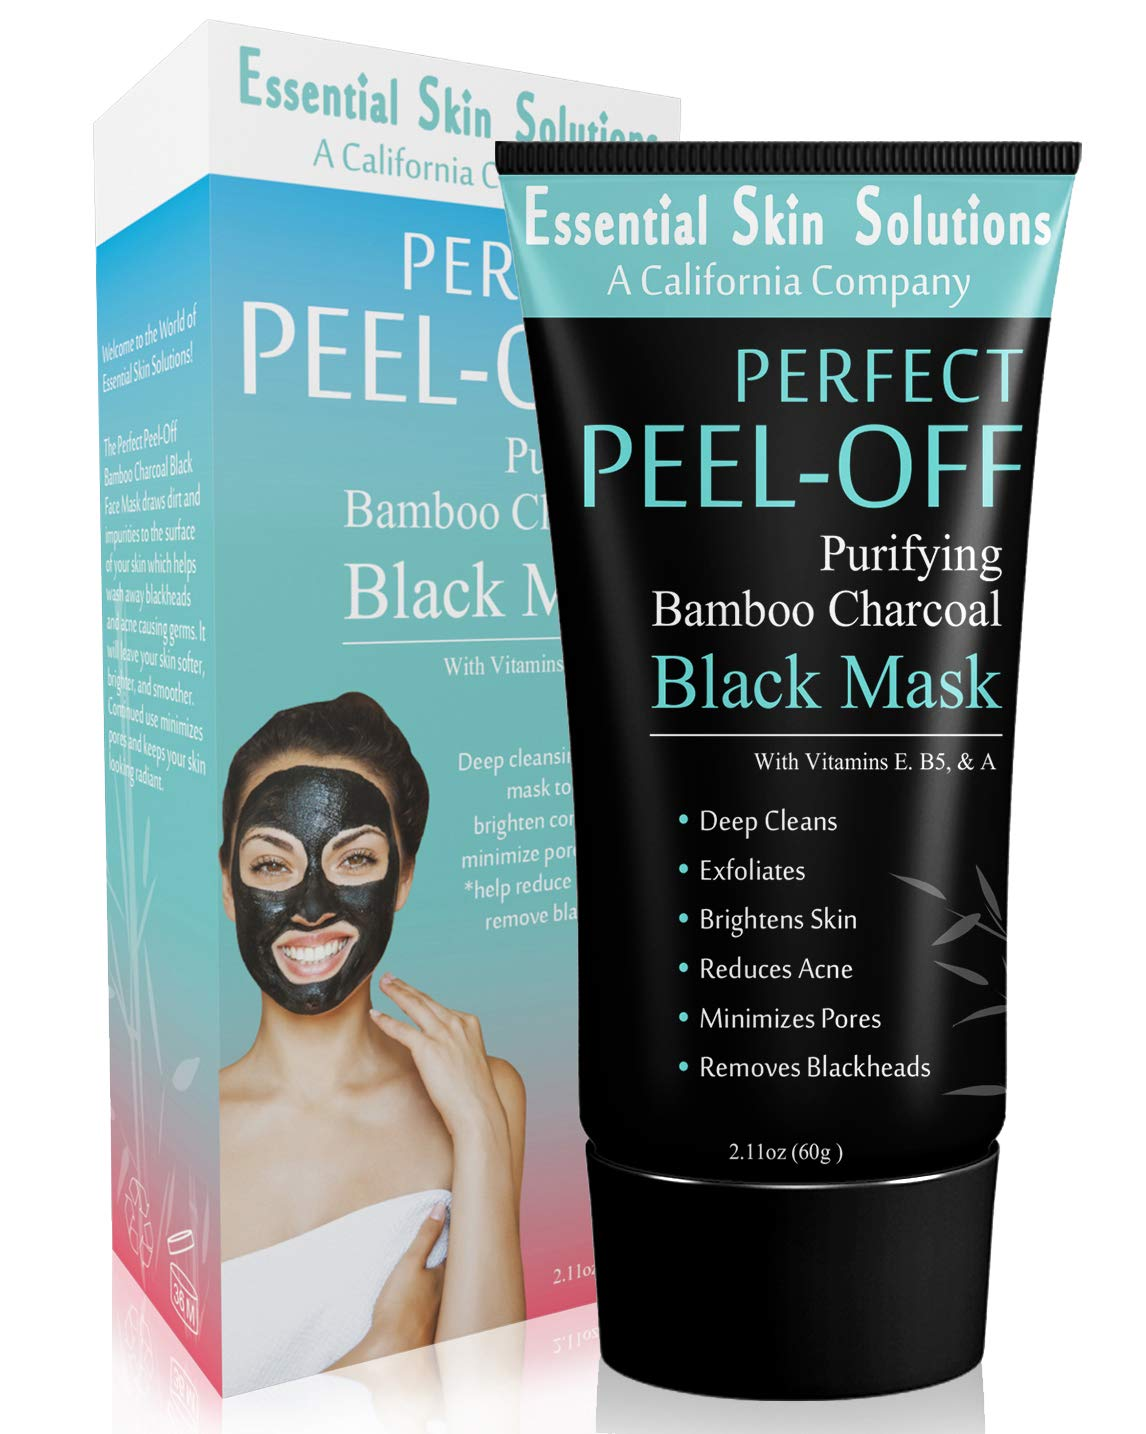 Charcoal Peel Off Face Mask - Blackhead Remover - Brightening & Exfoliating Facial Mask - Purifying Pore Minimizer - Bamboo Detox Peel Off for Smooth Clear Skin - Helps Reduce Acne & Dark Spots